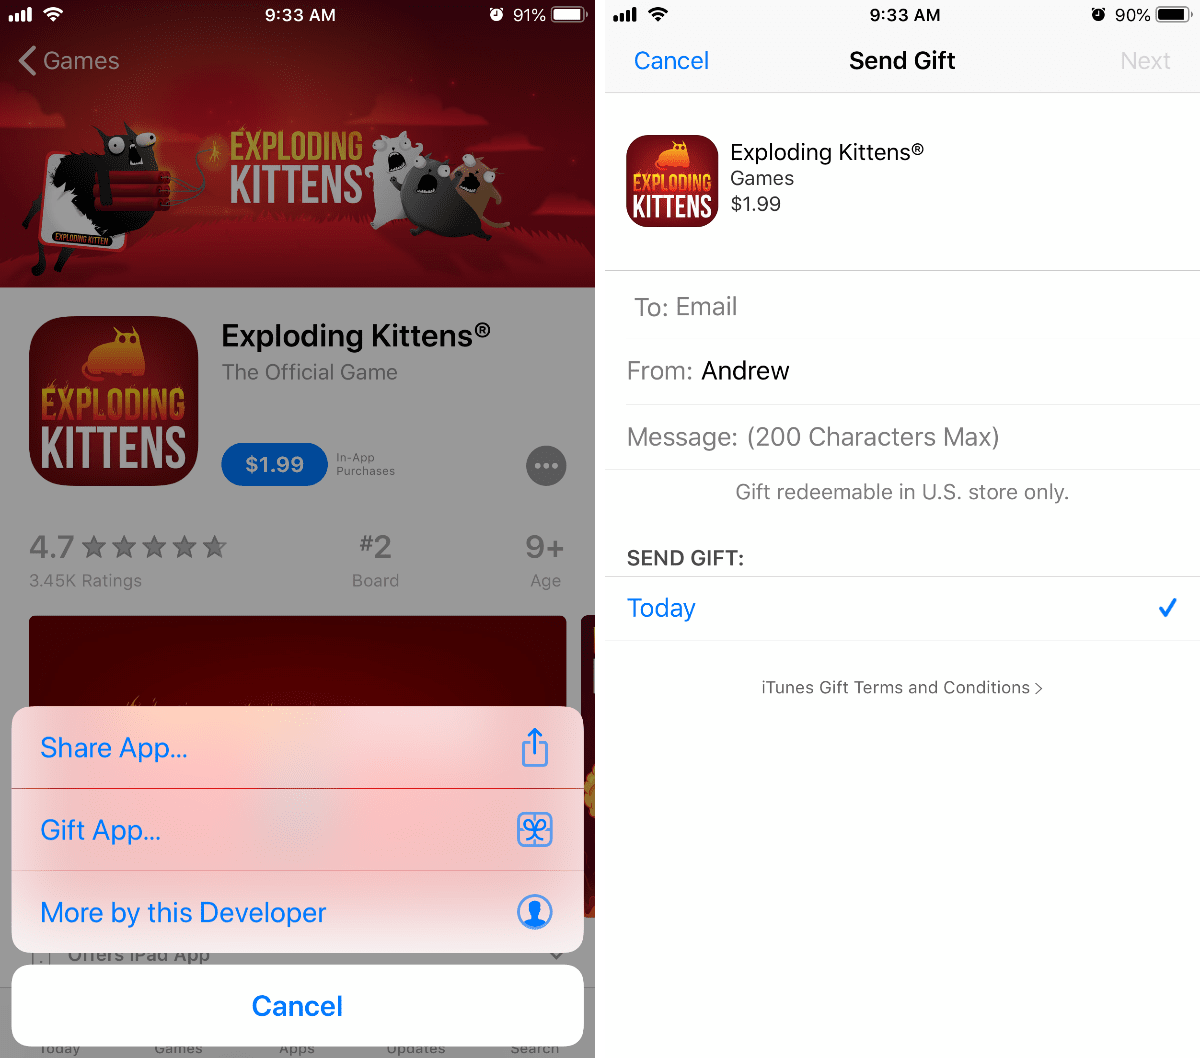 you can now gift In-App Purchases. gifting apps shown here